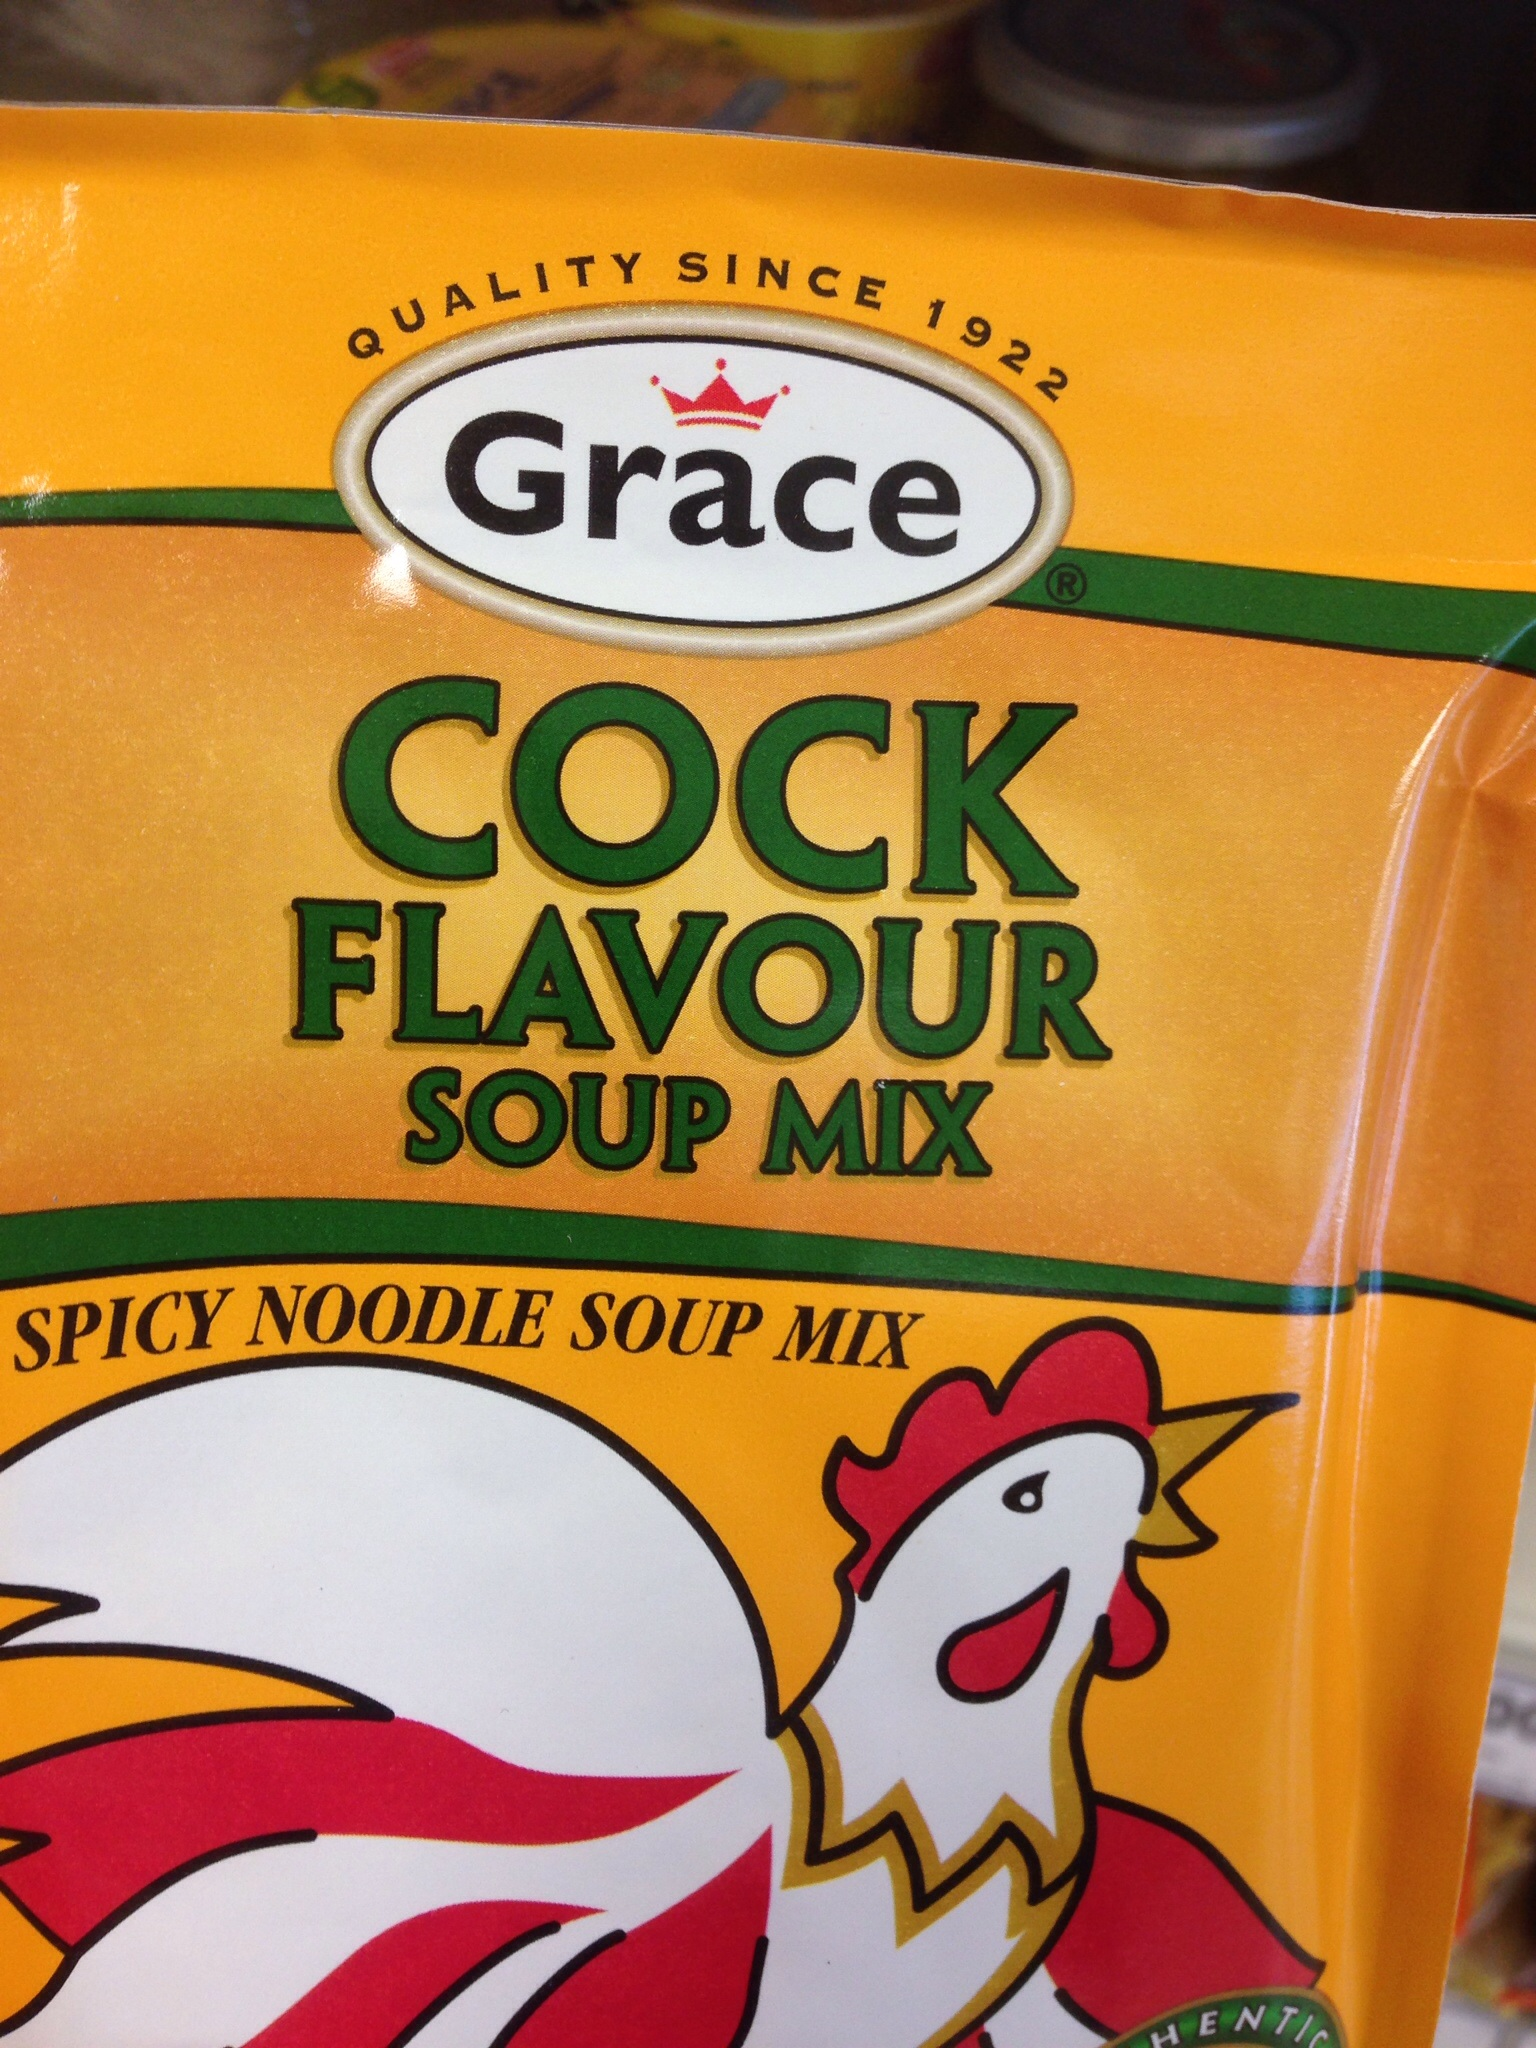 Saw this in tesco - Syns?-image.jpg